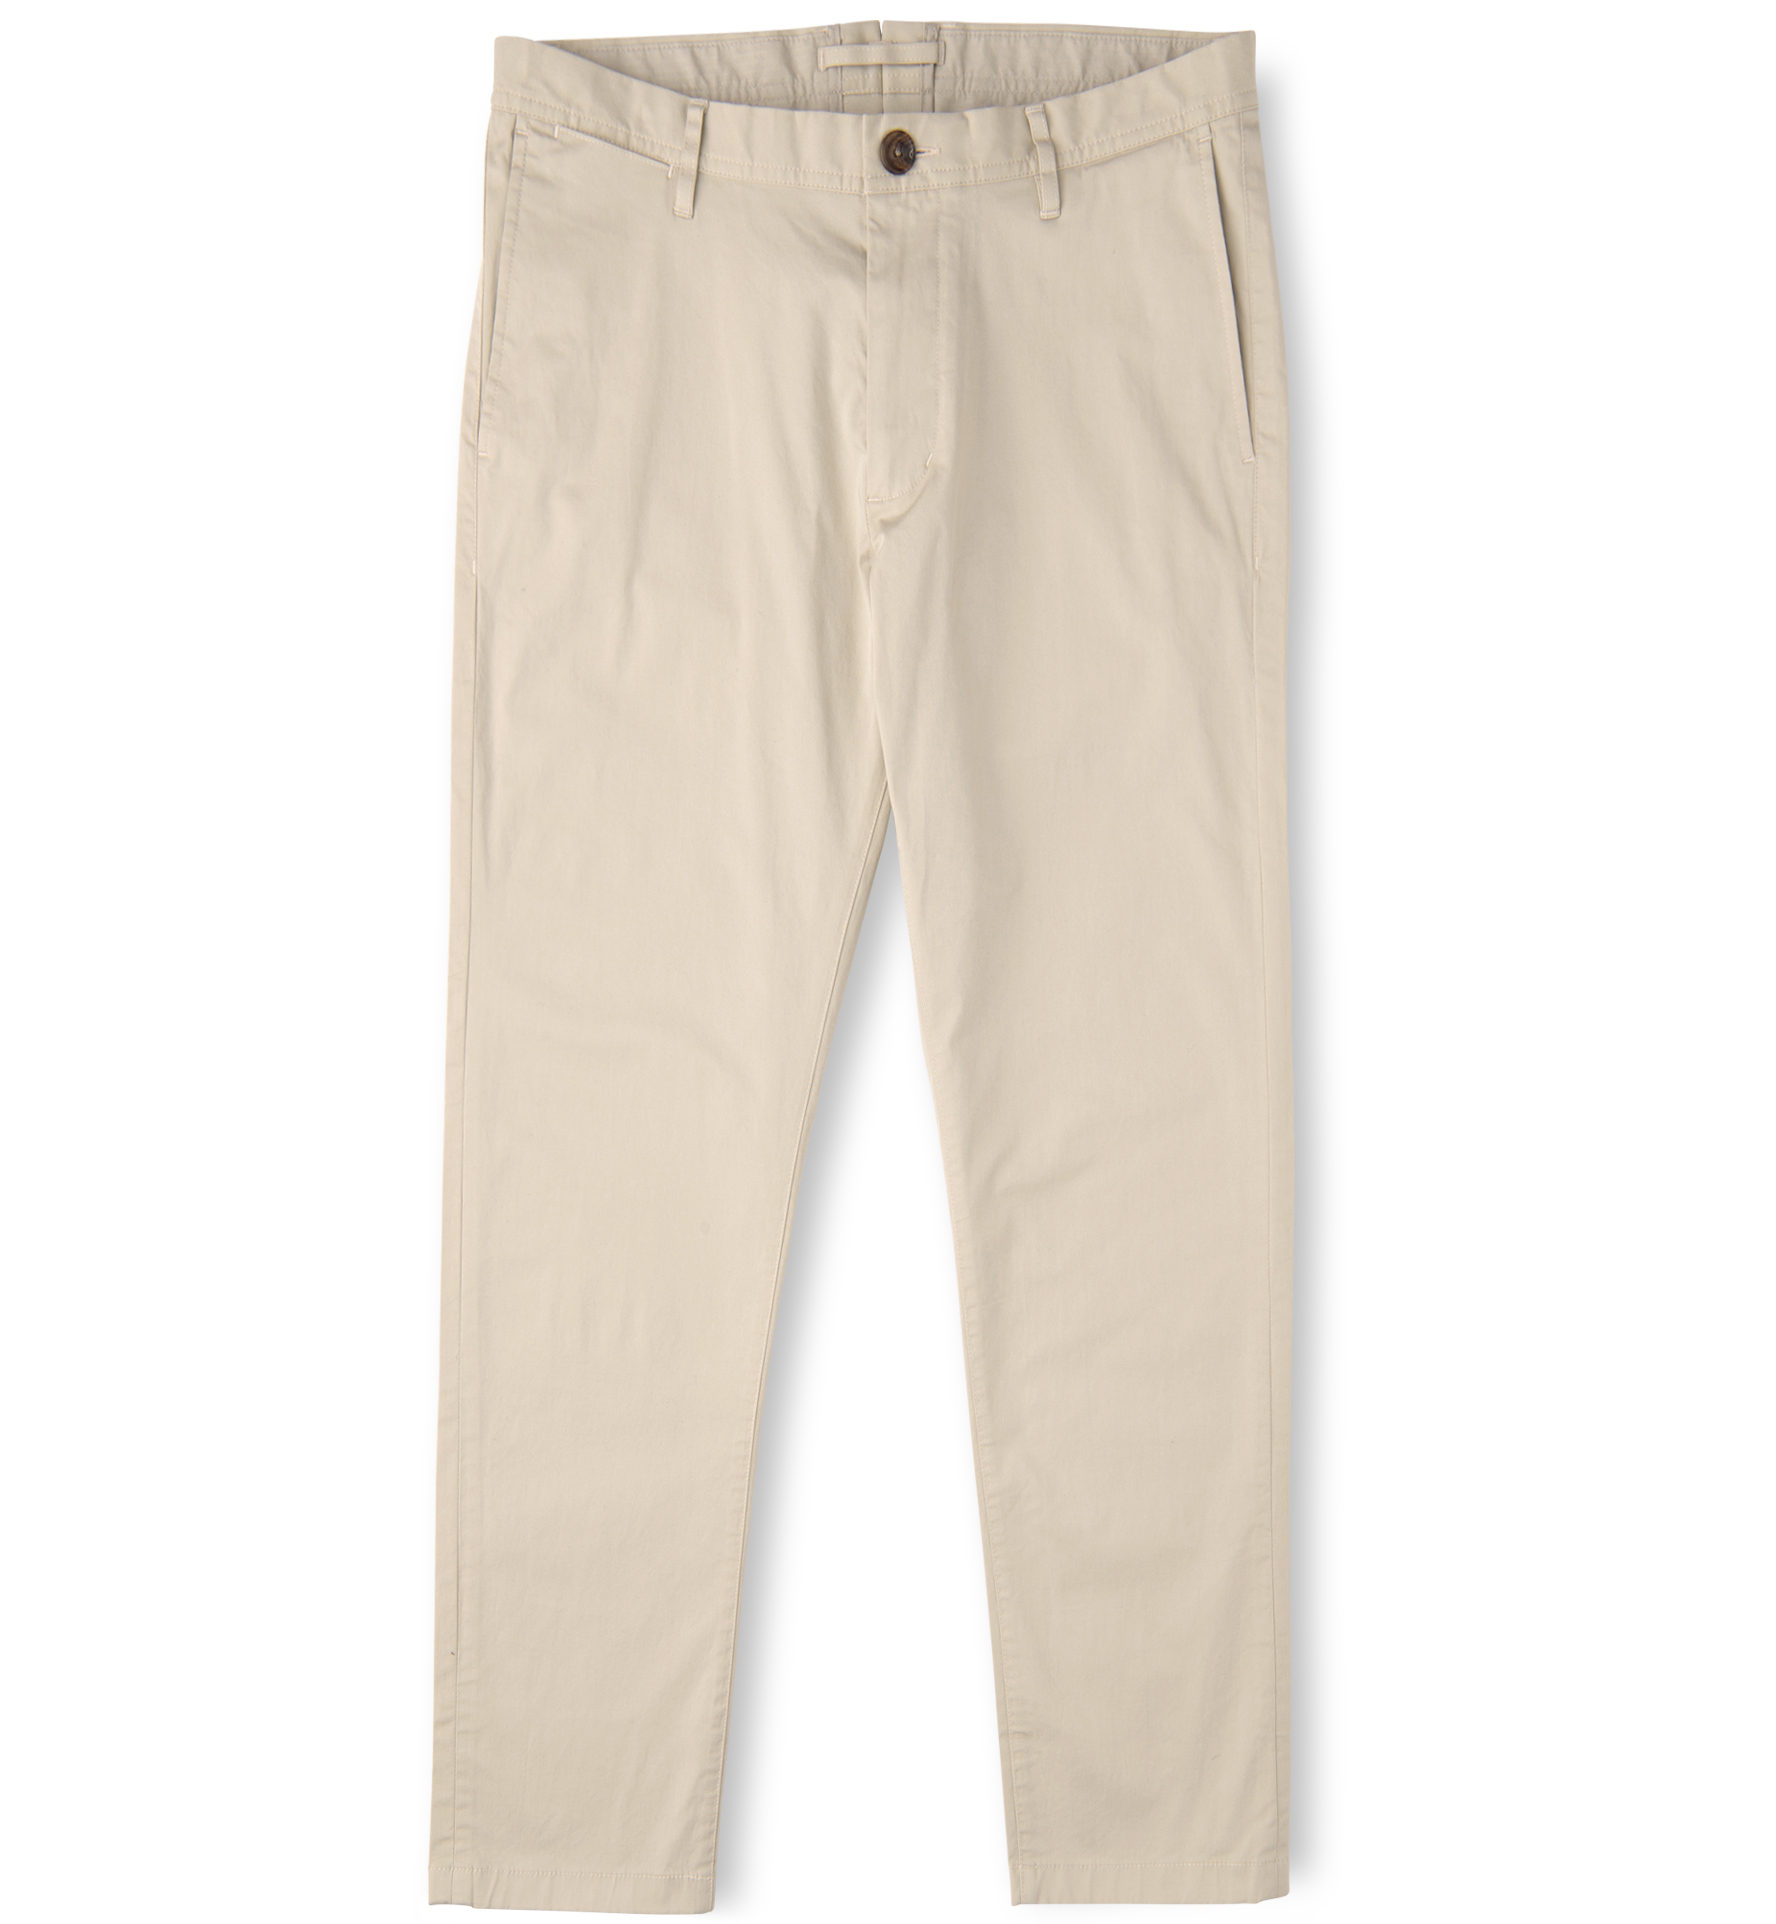 Zoom Image of Bowery Beige Stretch Cotton Twill Chino